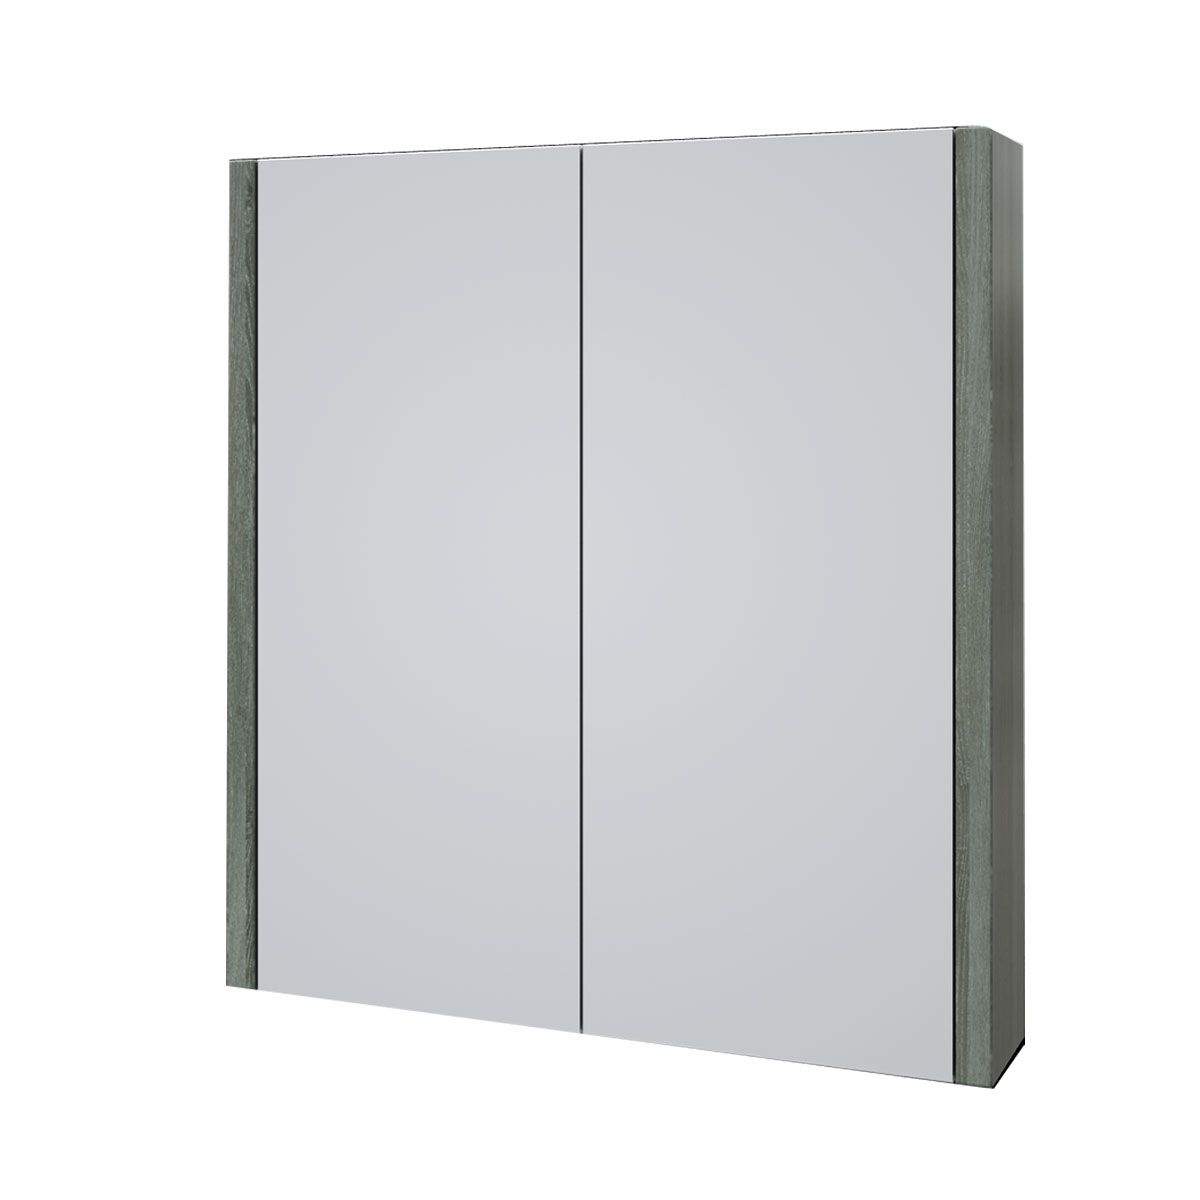 Kartell Purity Grey Ash Double Mirrored Bathroom Cabinet 600mm